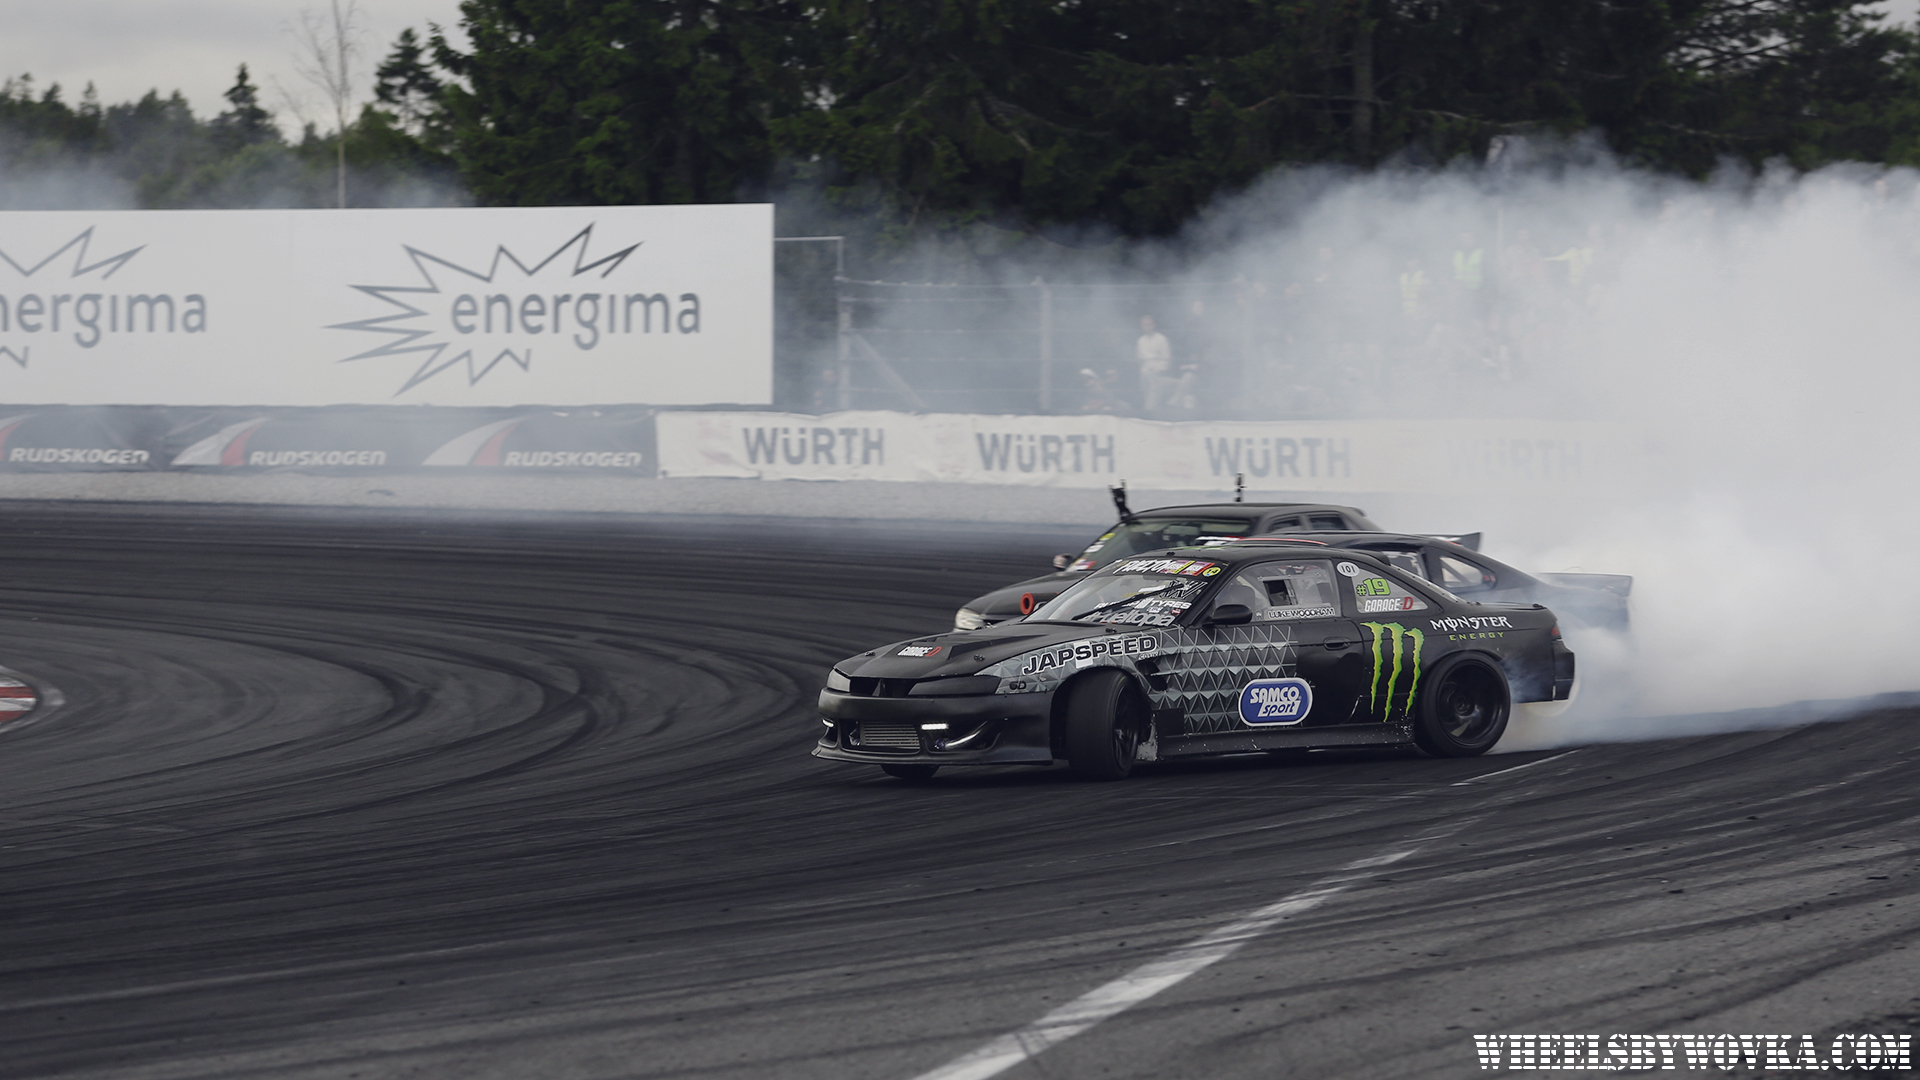 monster-energy-motorsport-drift-gatebil-rudskogen-by-wheelsbywovka-3